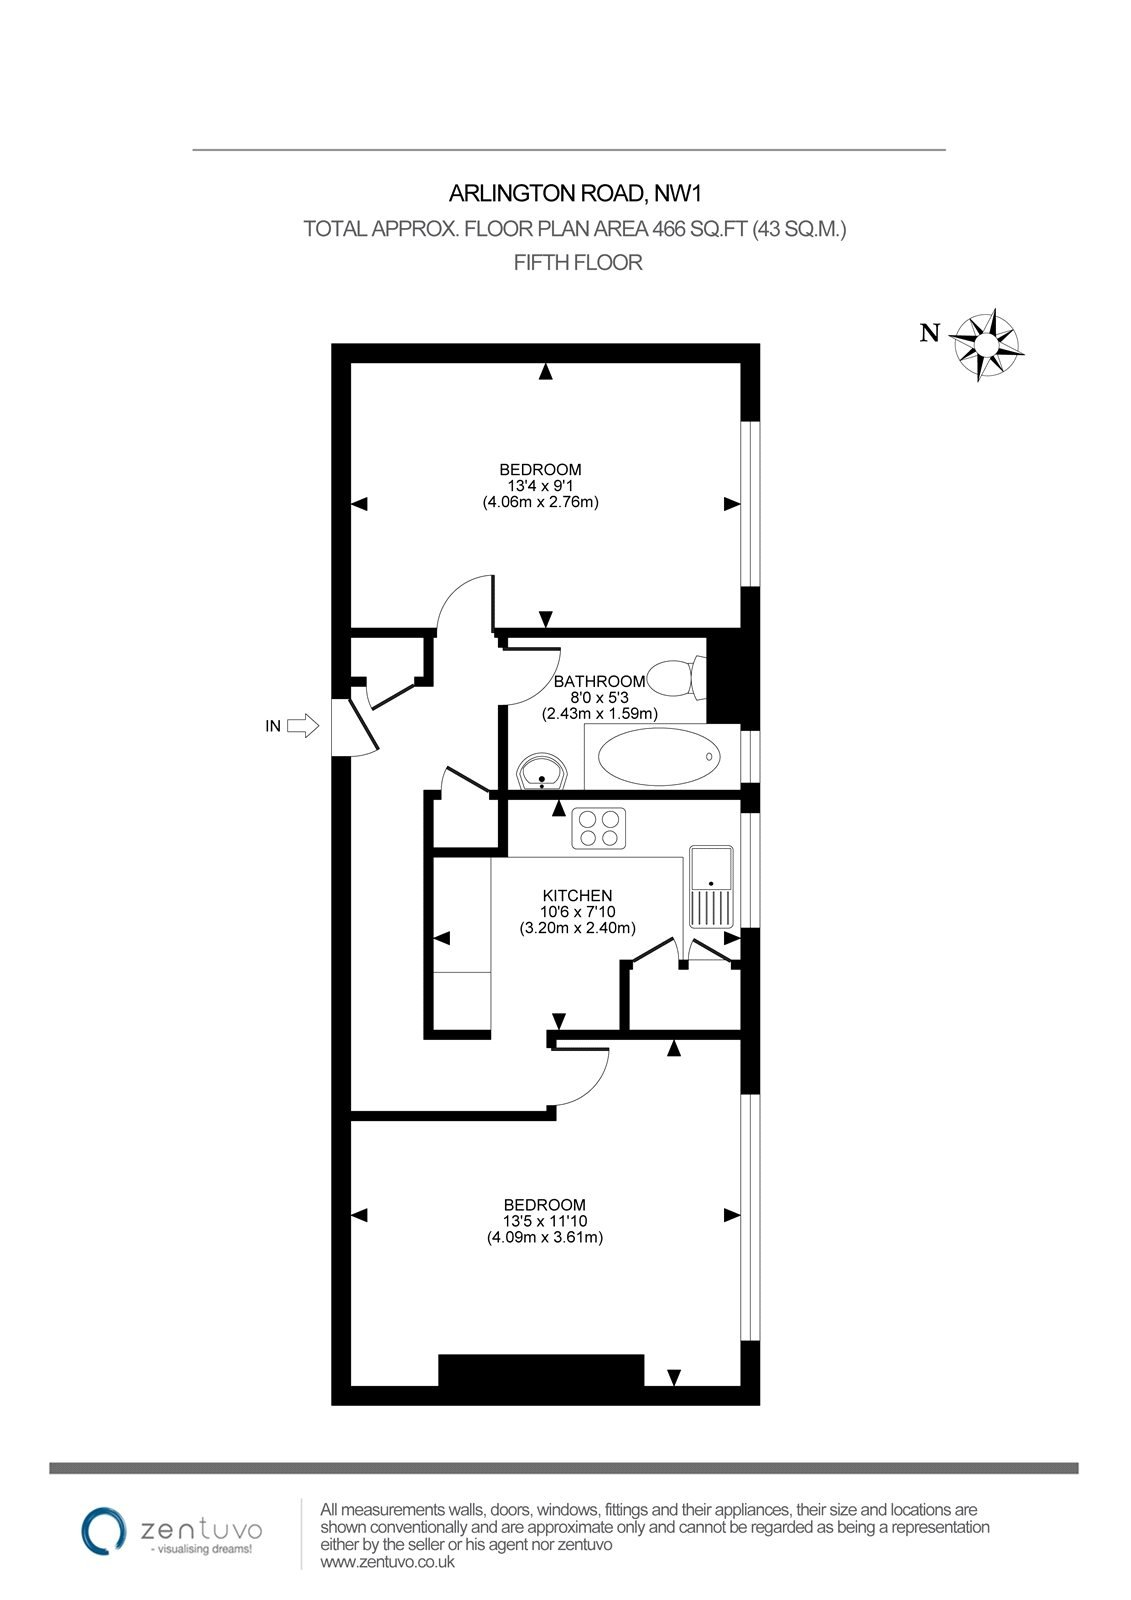 Property For Sale Arlington Road Nw